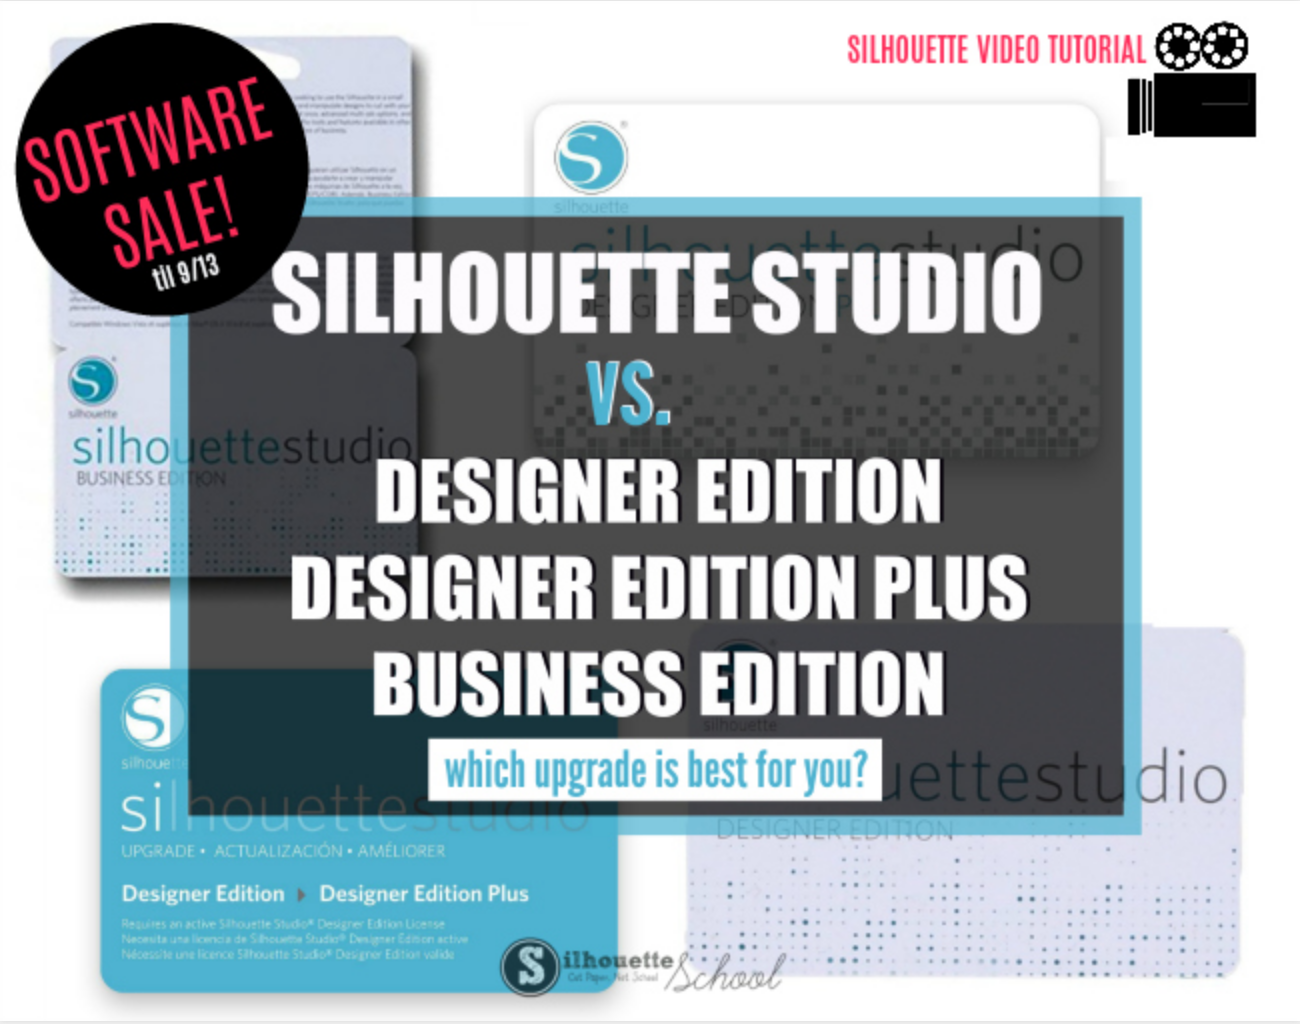 Video Tutorial Are Silhouette Studio Software Upgrades Worth It 2 Day Sale Silhouette School